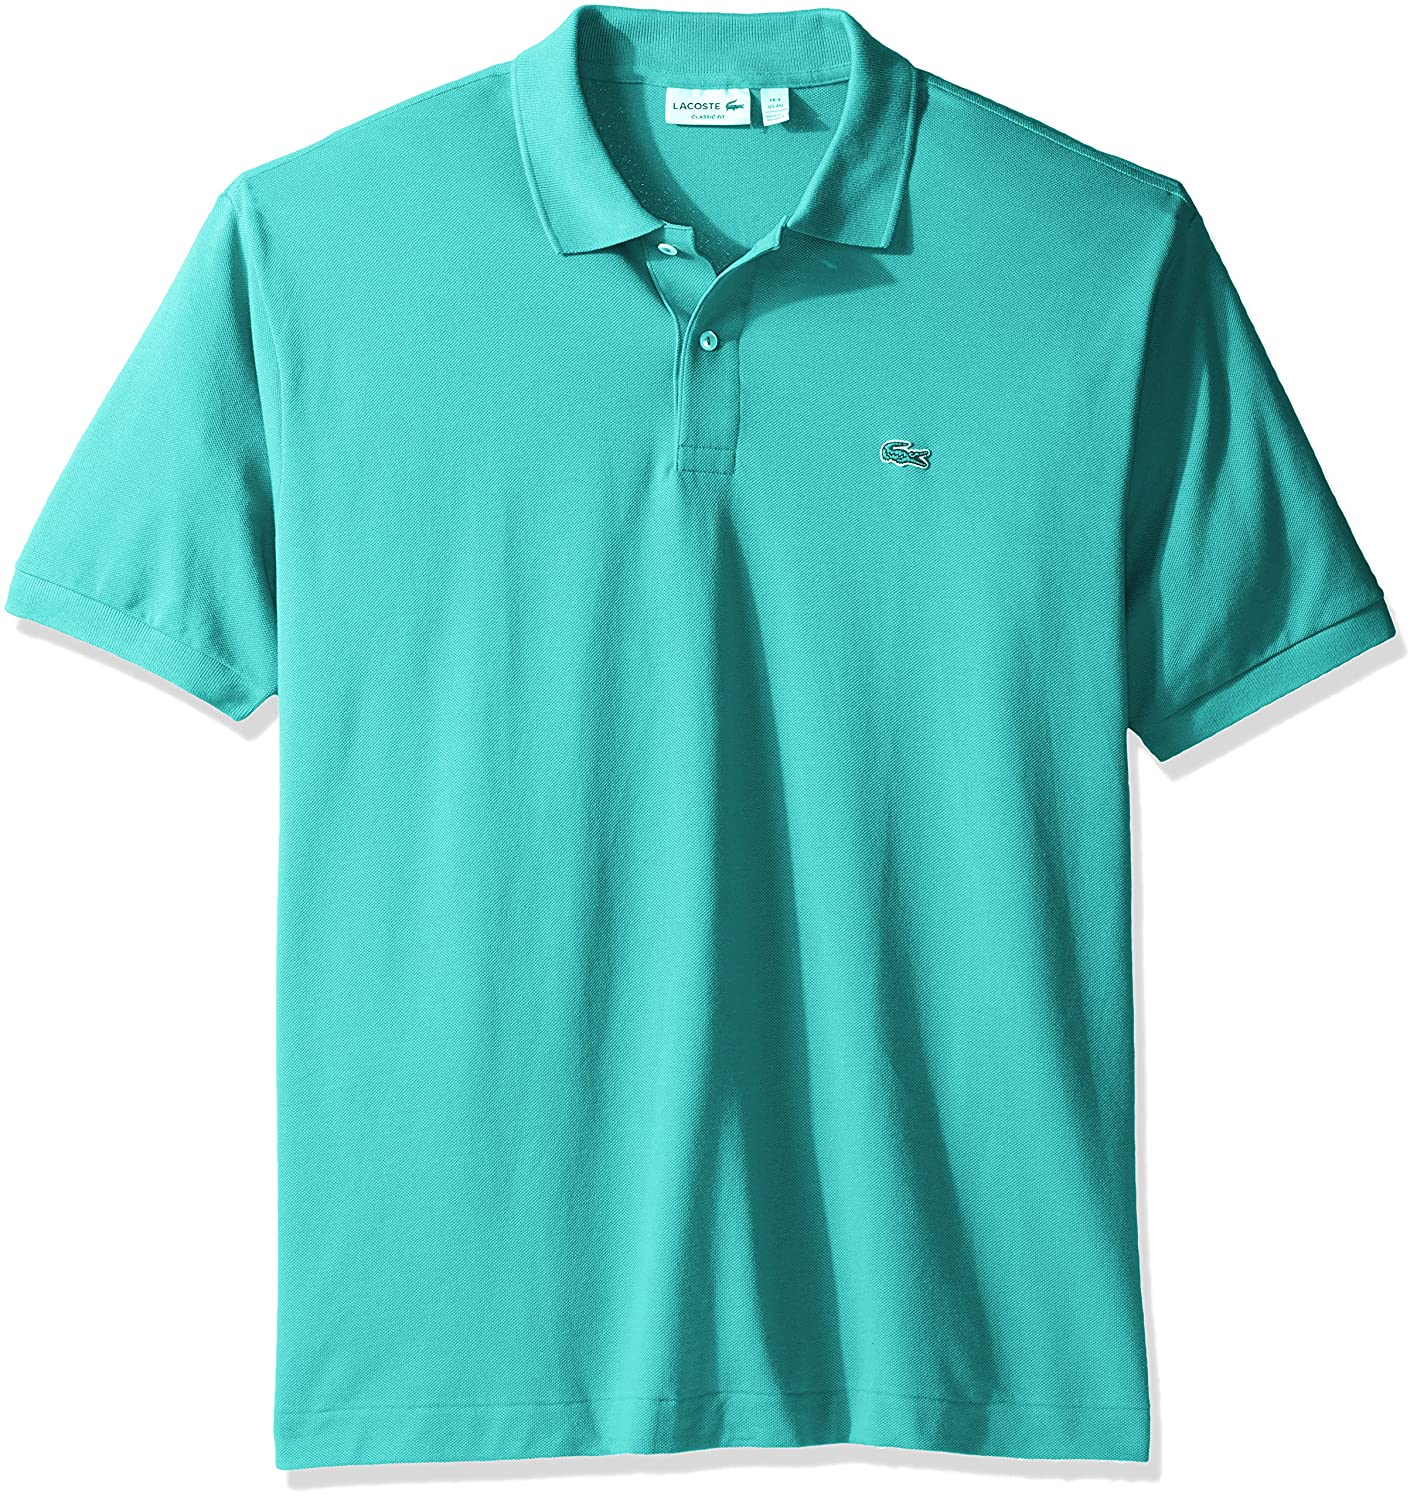 416bd2fc Lacoste Men's Short Sleeve Pique L.12.12 Classic Fit Polo Shirt, L1212 at  Amazon Men's Clothing store: